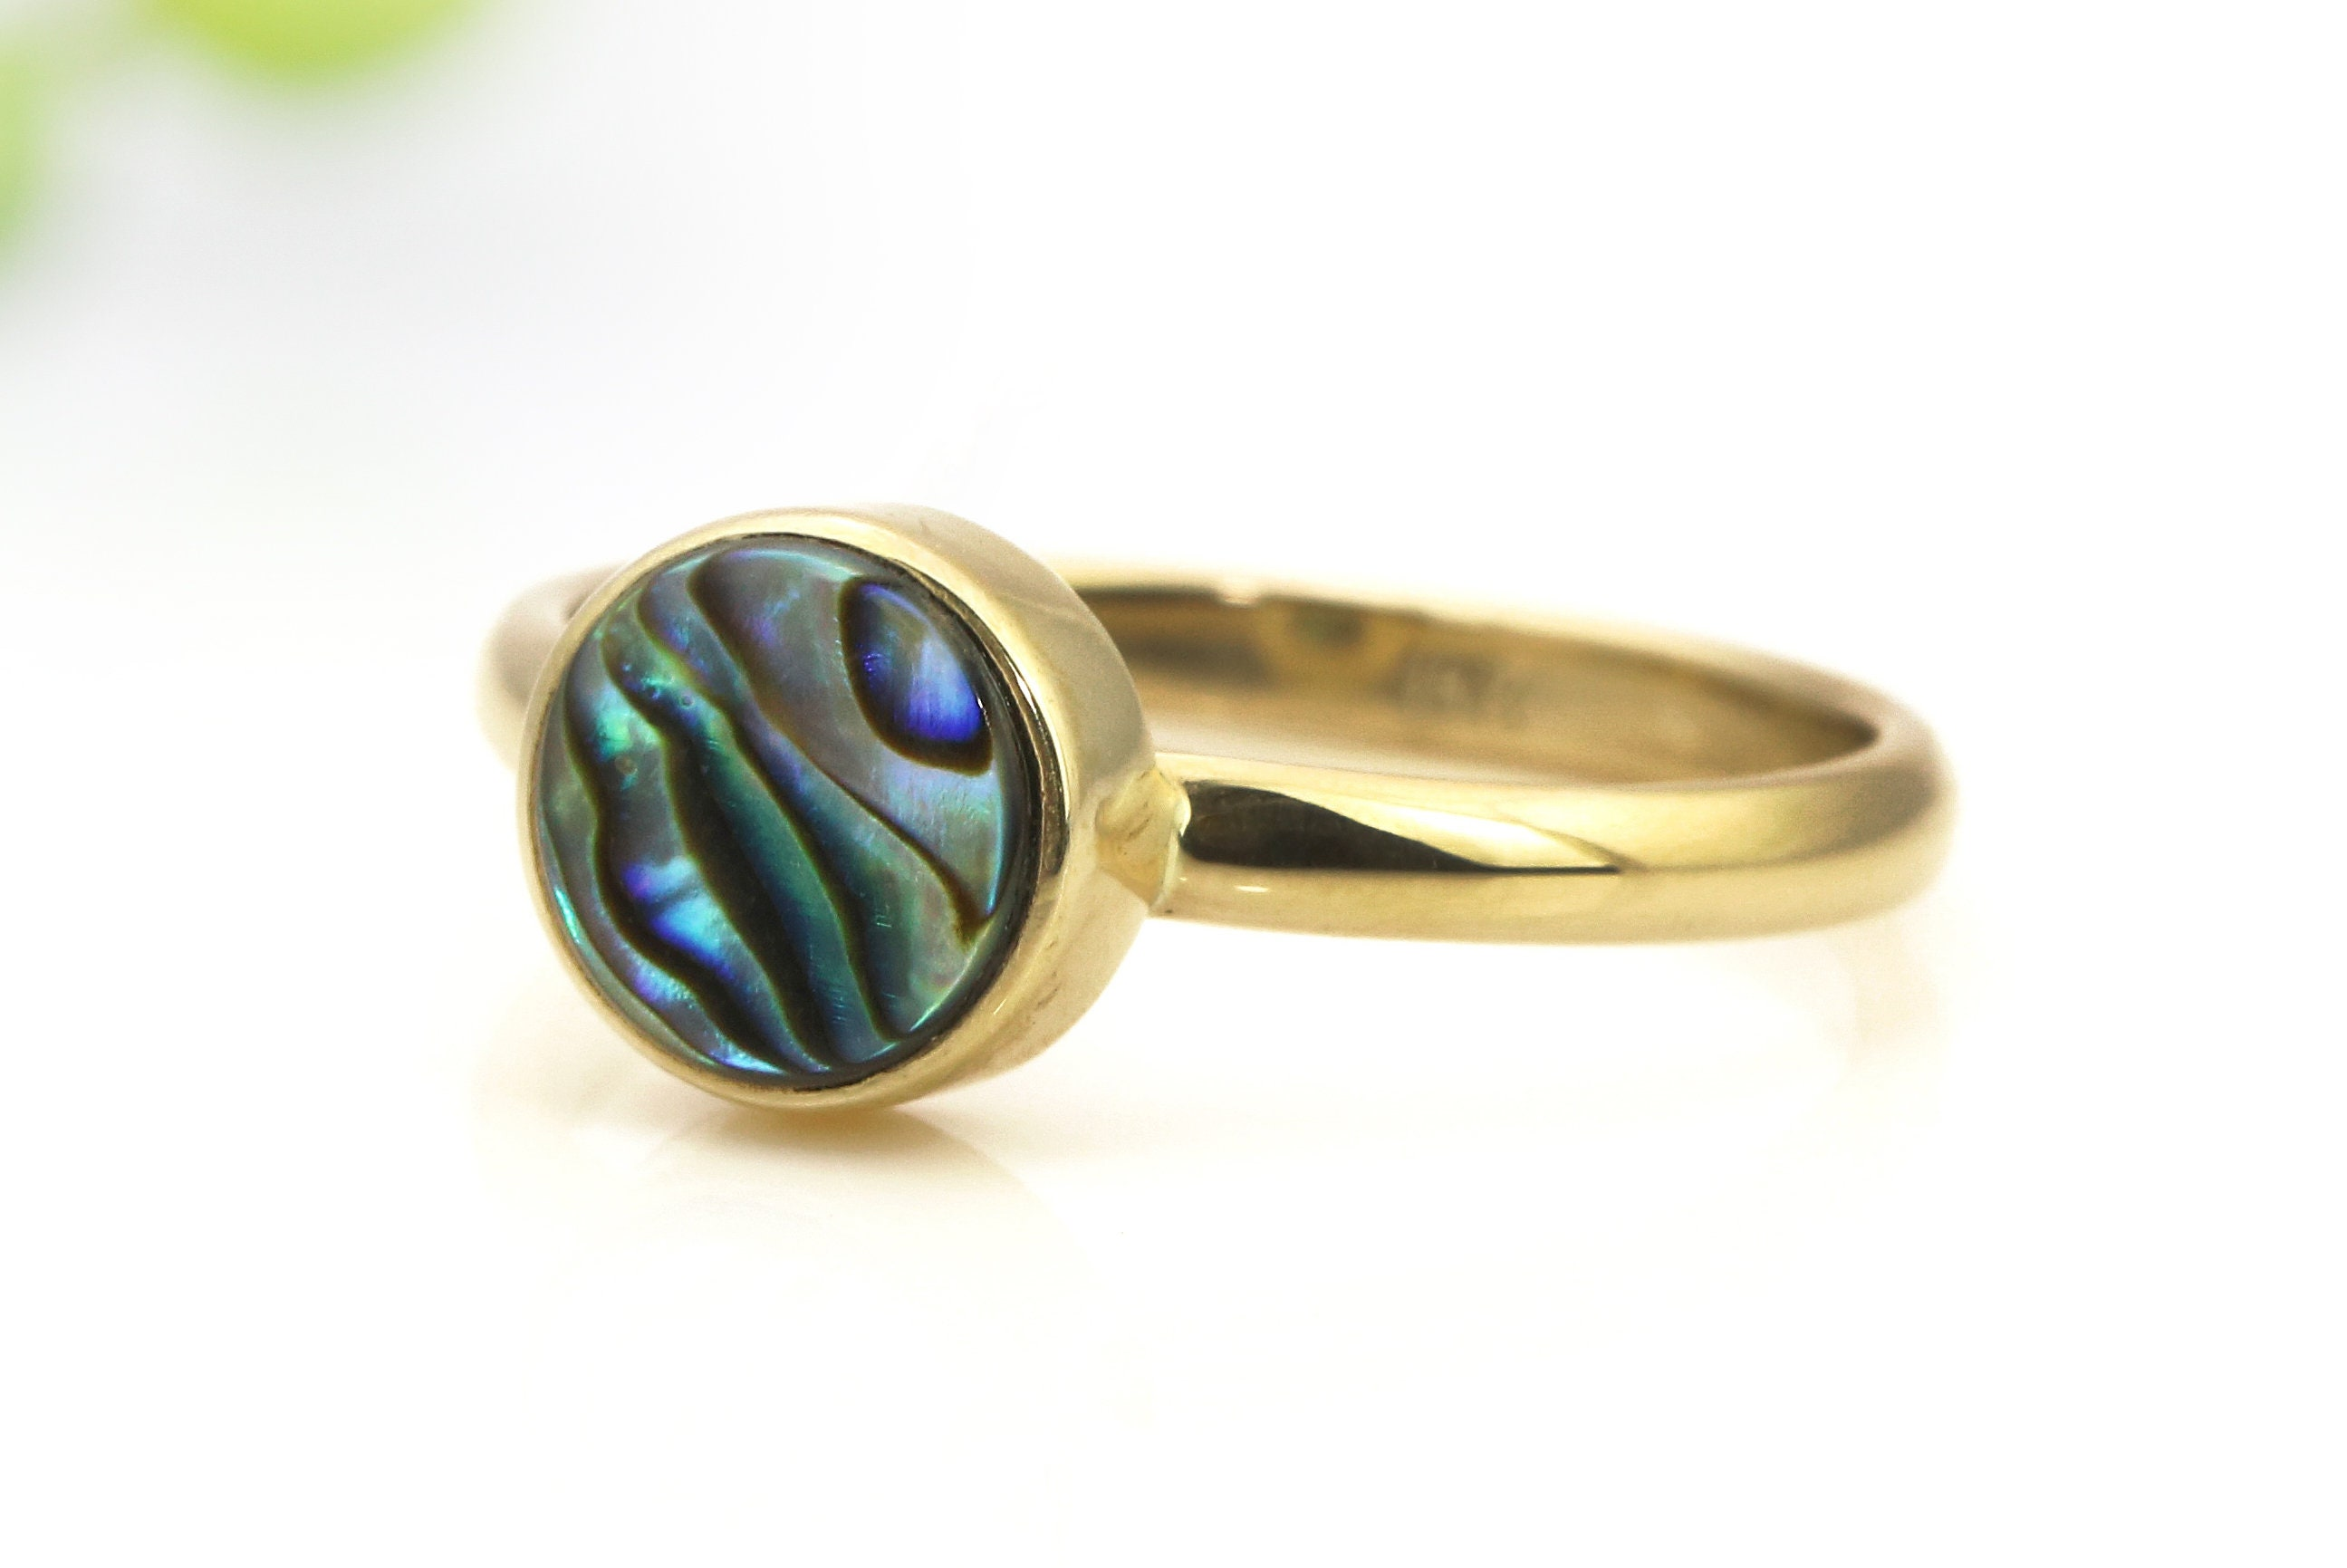 hers titanium rings mens his and sets wedding set wood lovely grace ring wooden of inspirational kingwood abalone